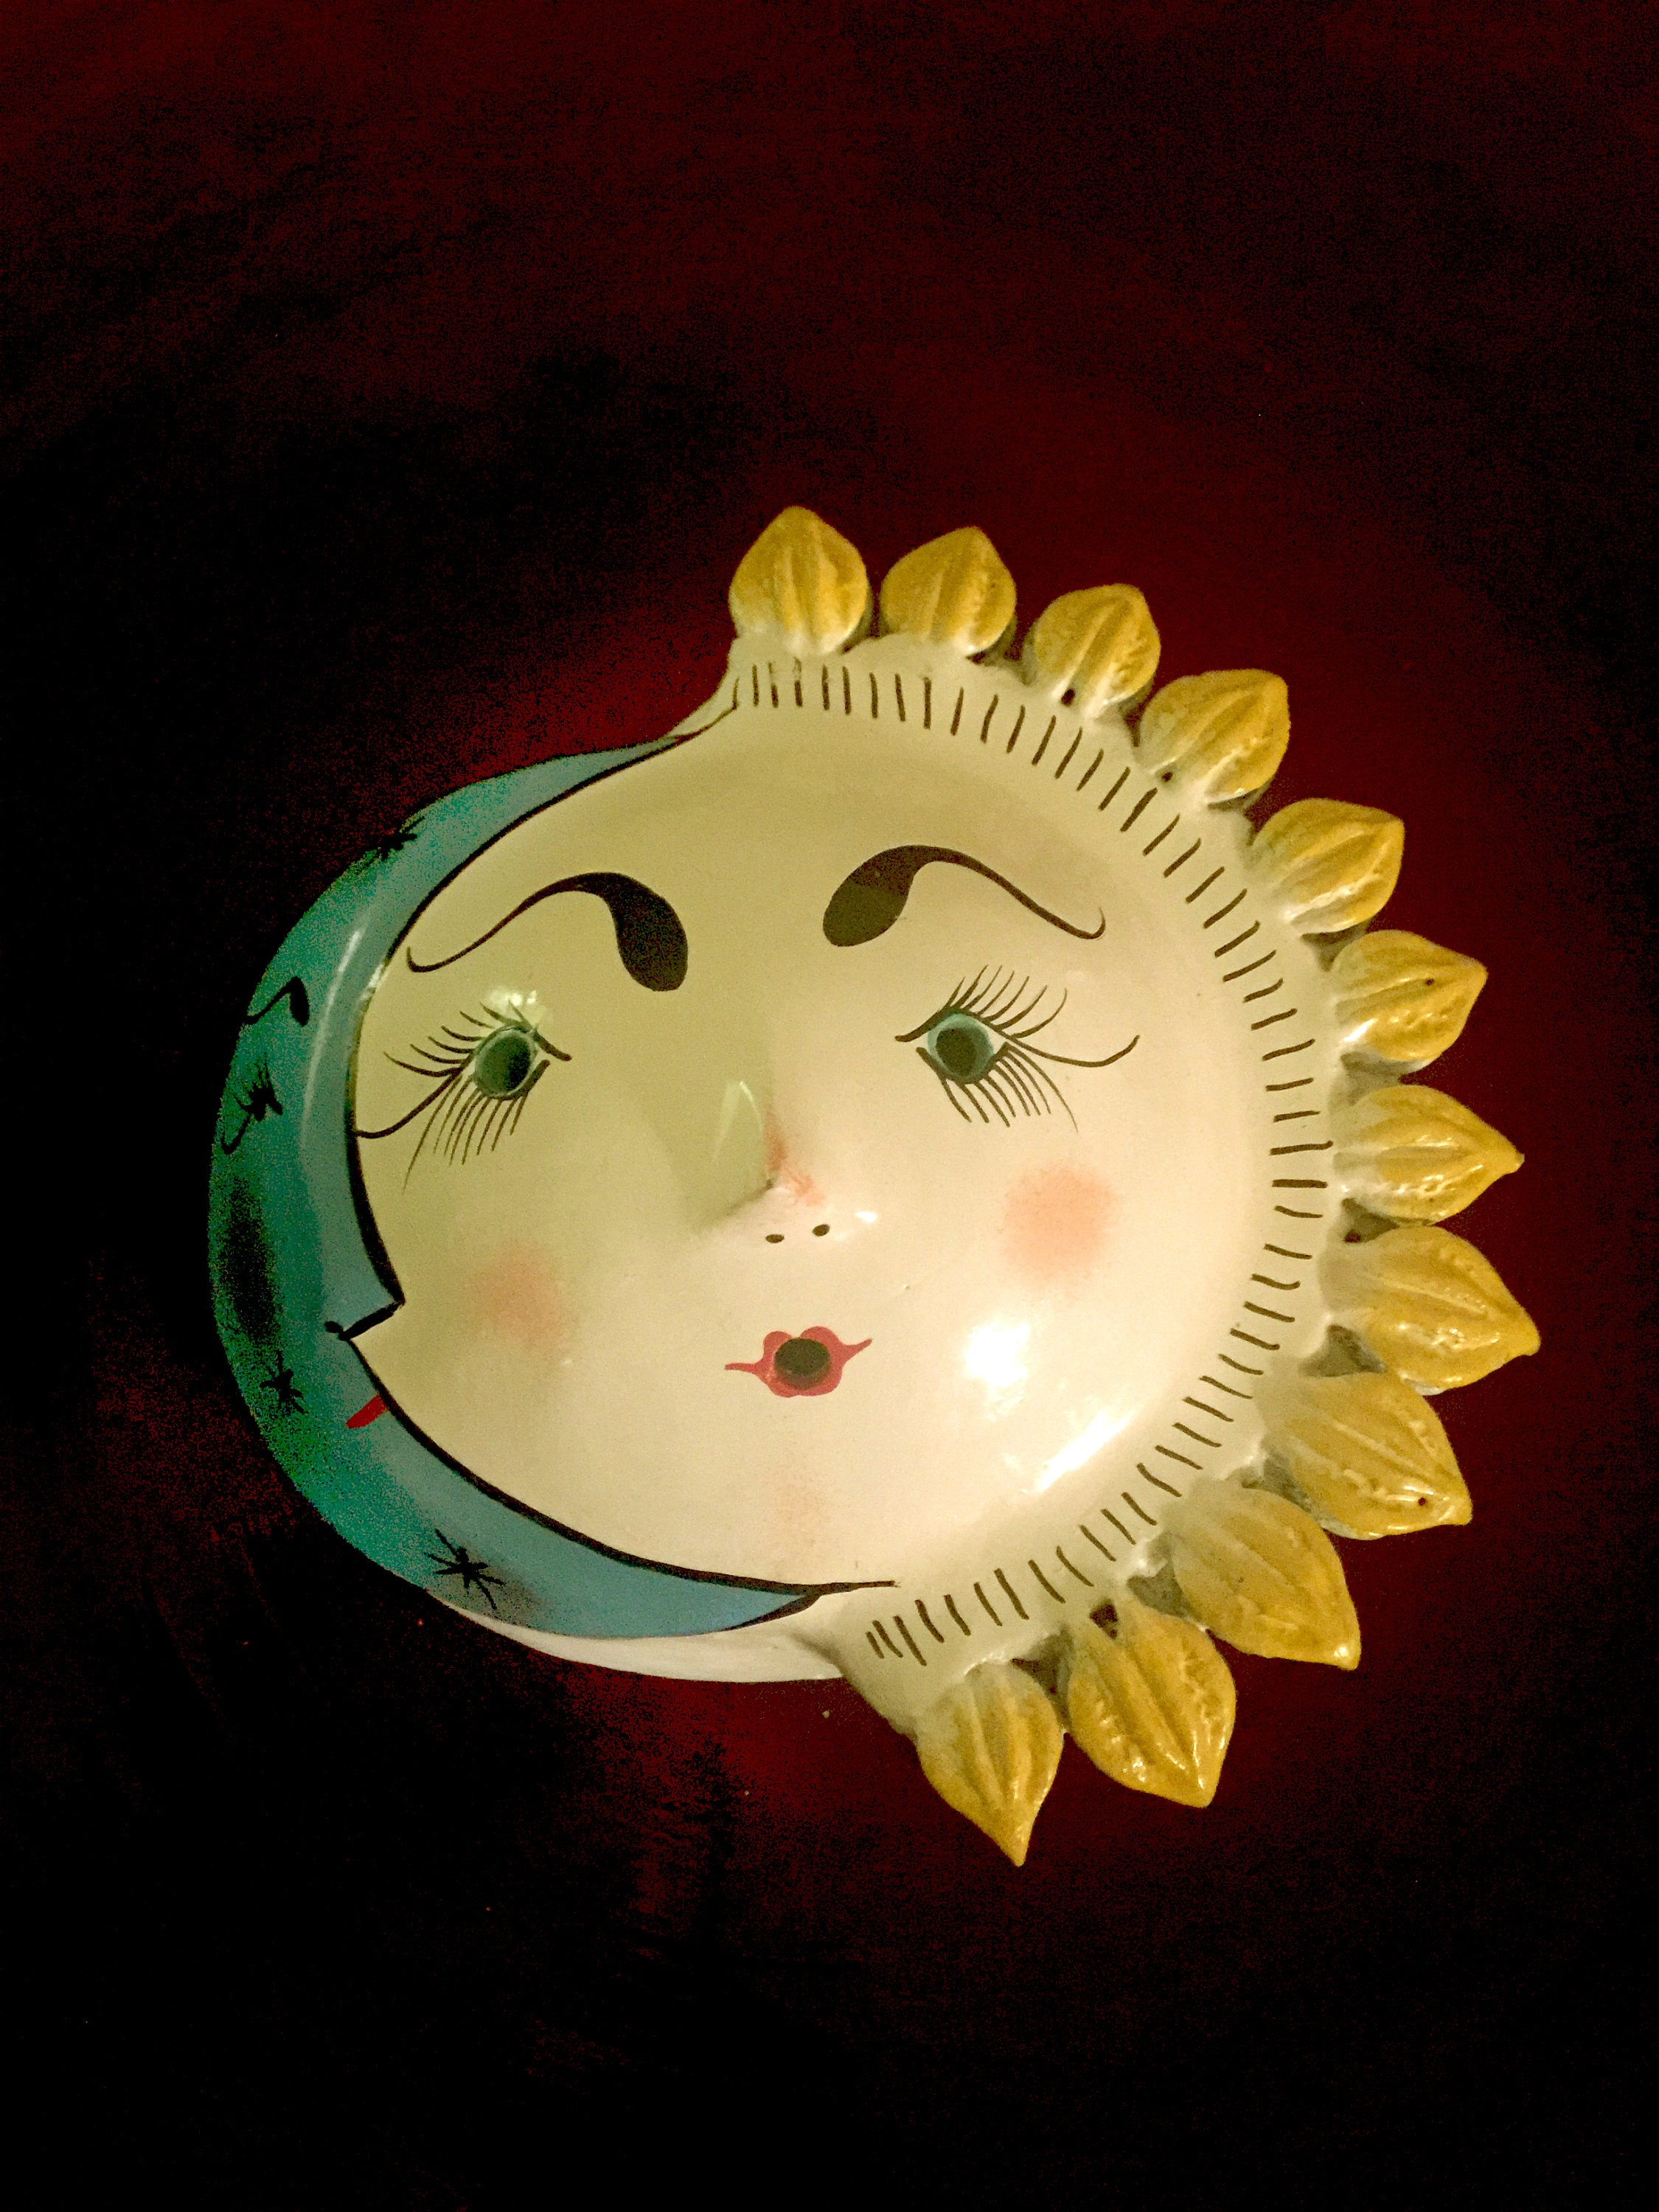 Luxury Ceramic Sun Wall Art Image Collection - The Wall Art ...